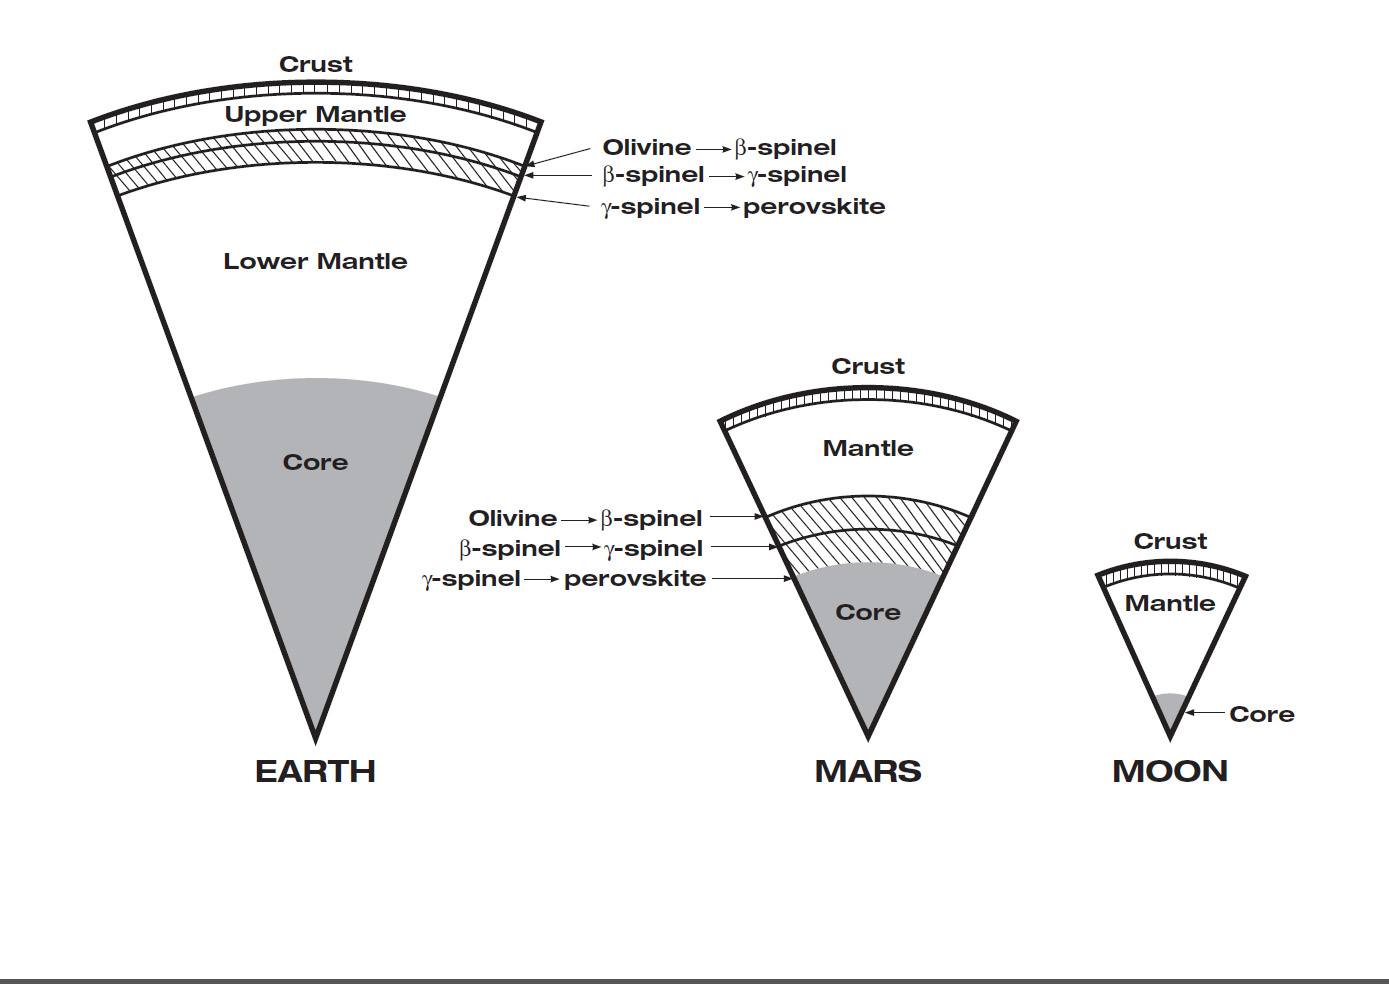 Mars has the same basic internal structure as the Earth and other terrestrial (rocky) planets. It is large enough to have pressures equivalent to those throughout the Earth's upper mantle, and it has a core with a similar fraction of it's mass. In contrast, the pressure even near the center of the Moon barely reach that just below the Earth's crust and it has a tiny, almost negligible core. The size of Mars indicates that it must have undergone many of the same separation and crystallization processes that formed the Earth's crust and core during early planetary formation. - Image Credit: JPL/NASA